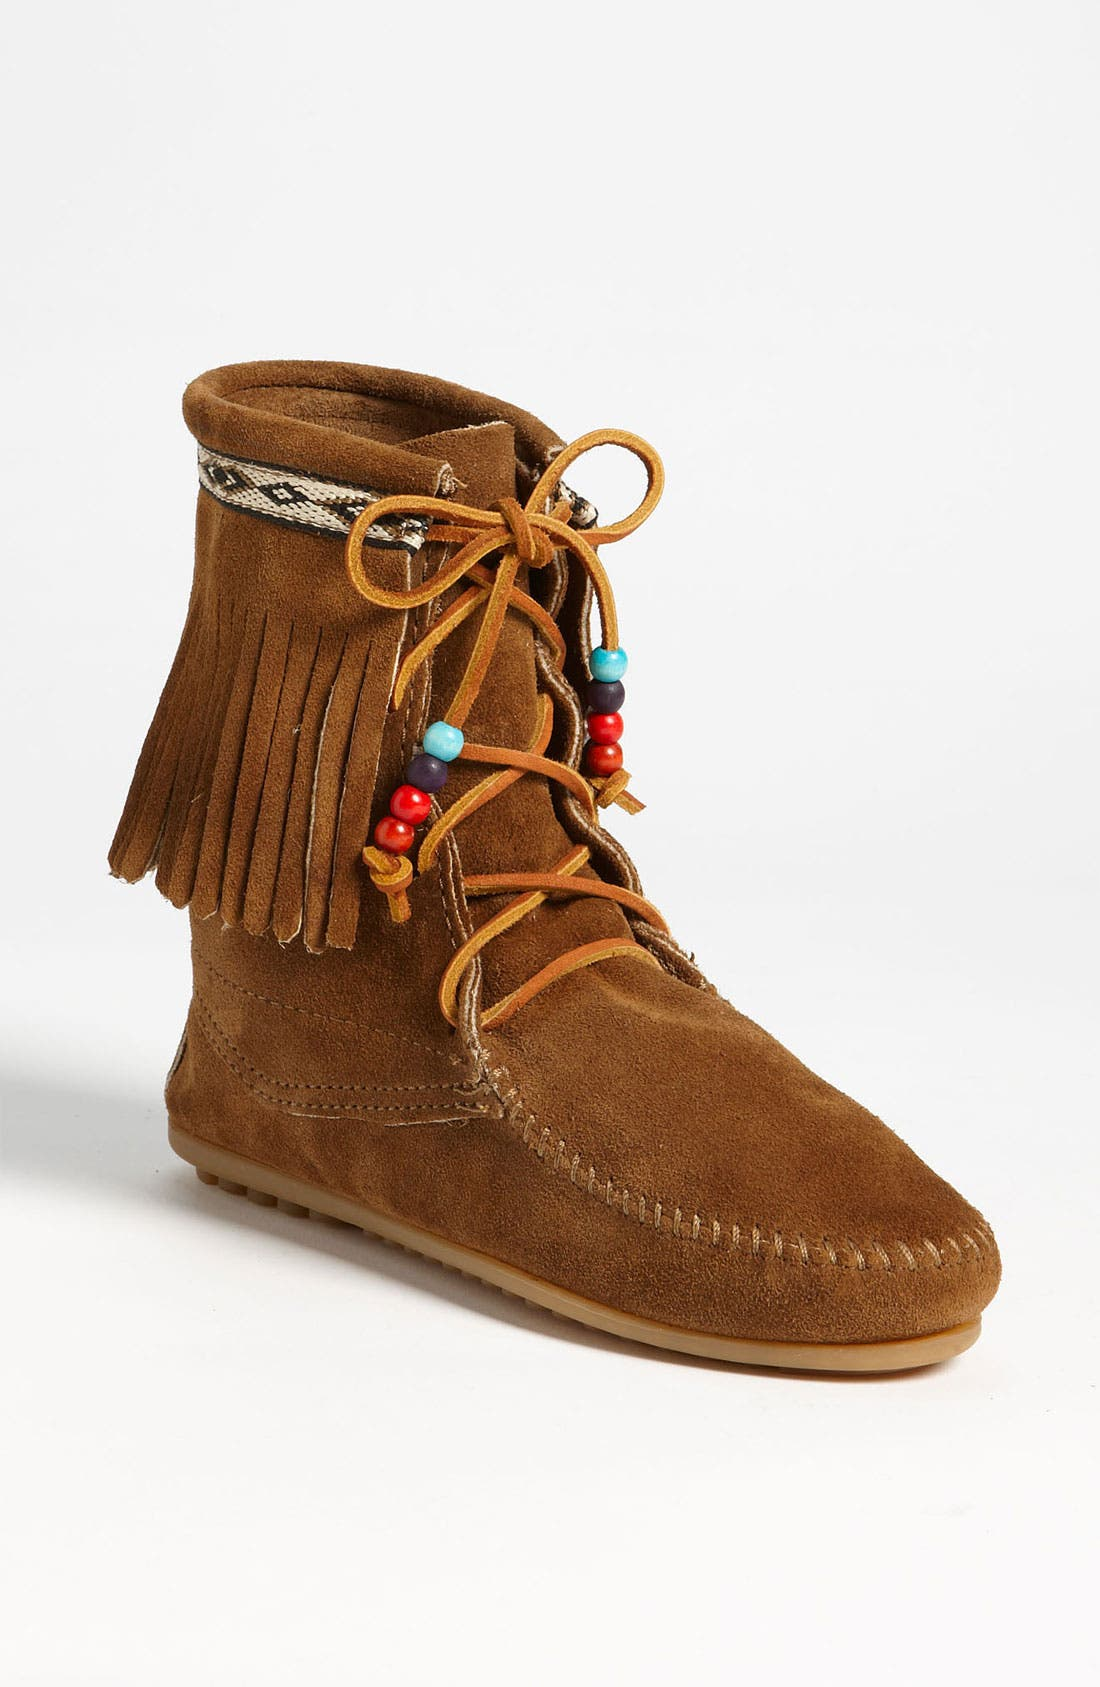 Main Image - Minnetonka 'Beaded Tramper' Boot